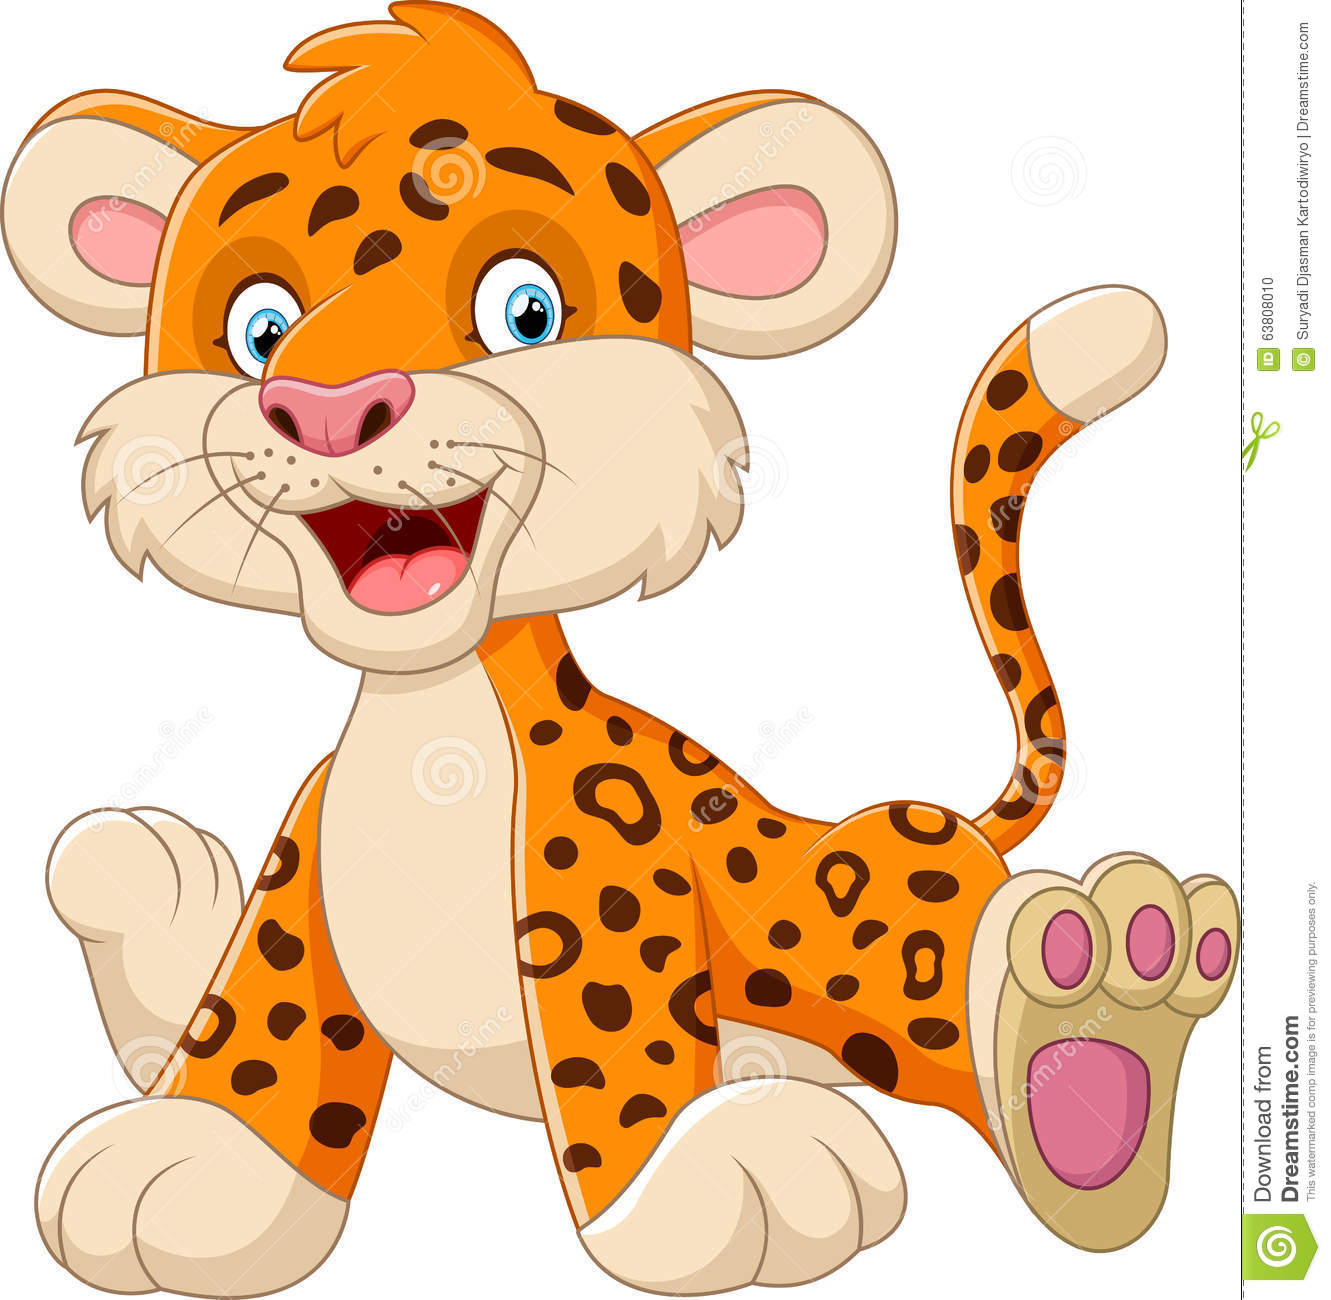 Cute baby leopard cartoon stock vector. Illustration of jungle ... for Clipart Leopard Cute  45gtk